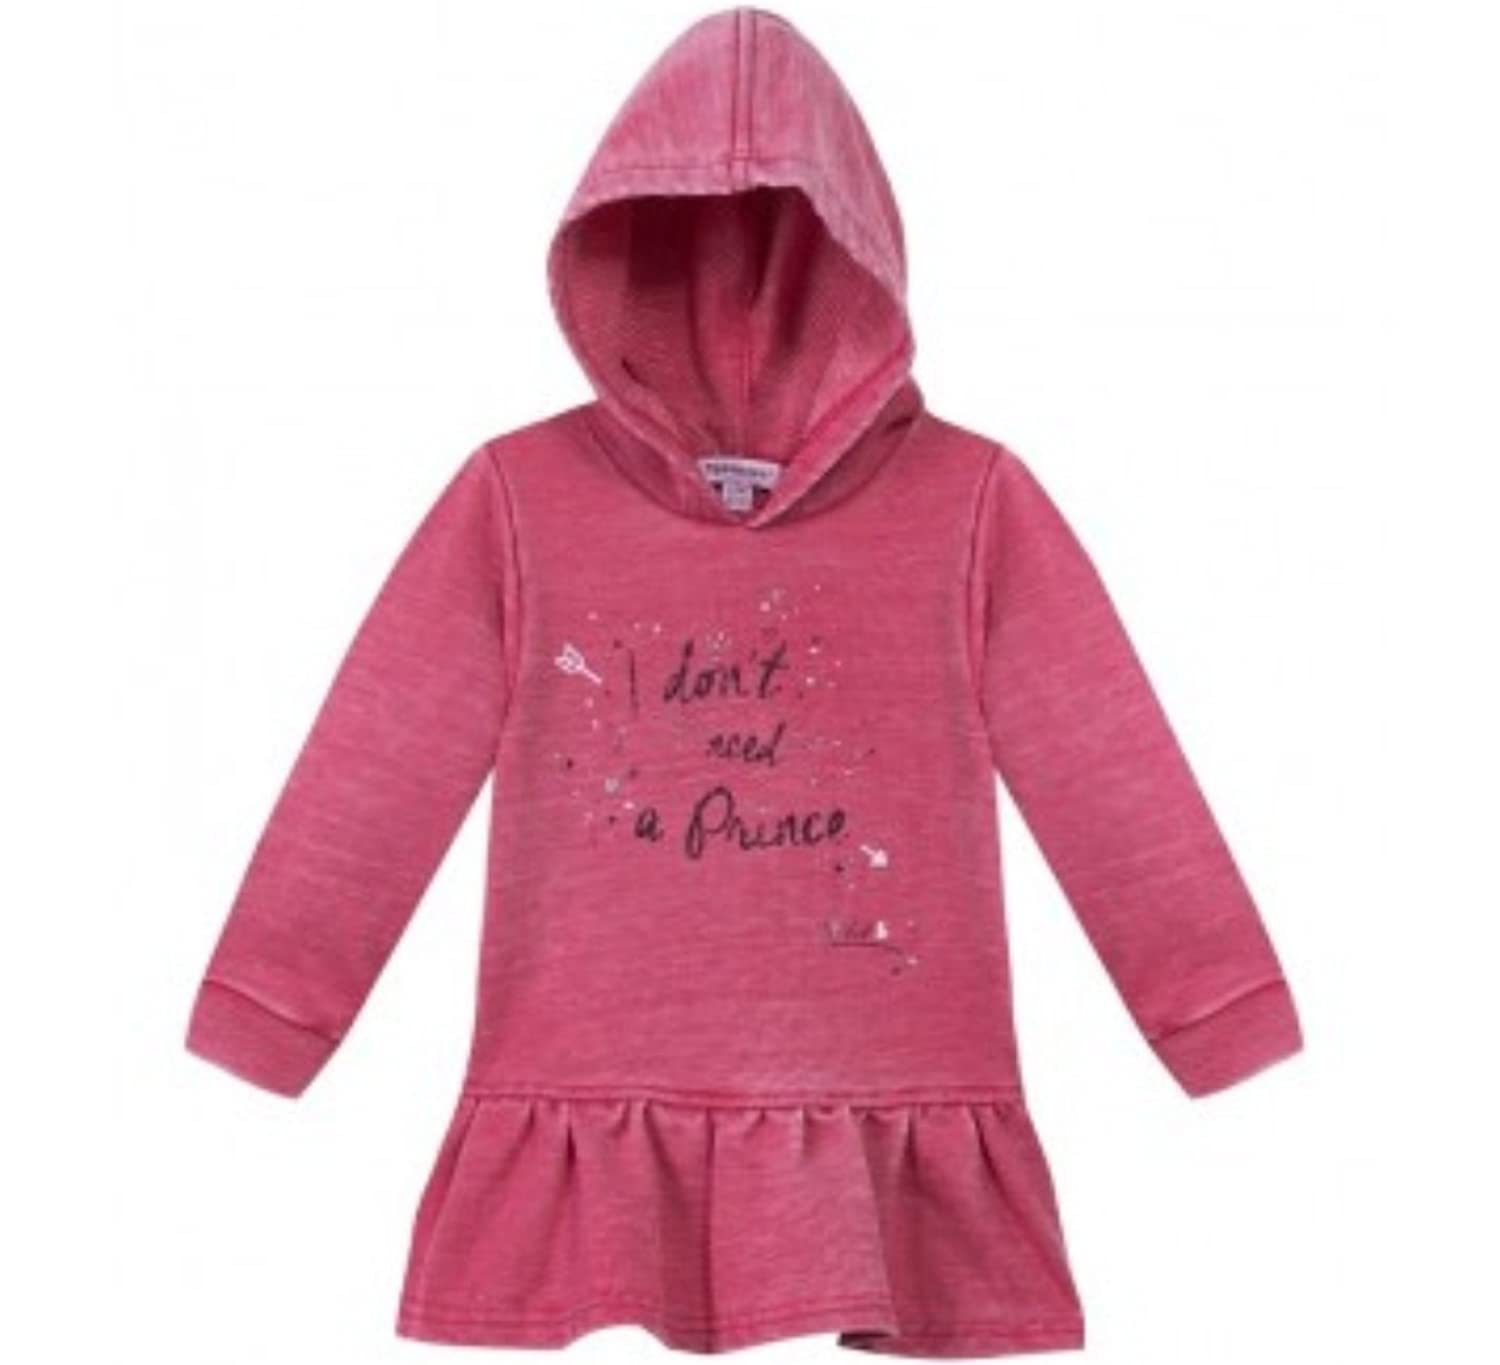 3 POMMES - ROBE BURN OUT CERISE LITTLE STAR - REF 3I30082 - 9/12 MOIS